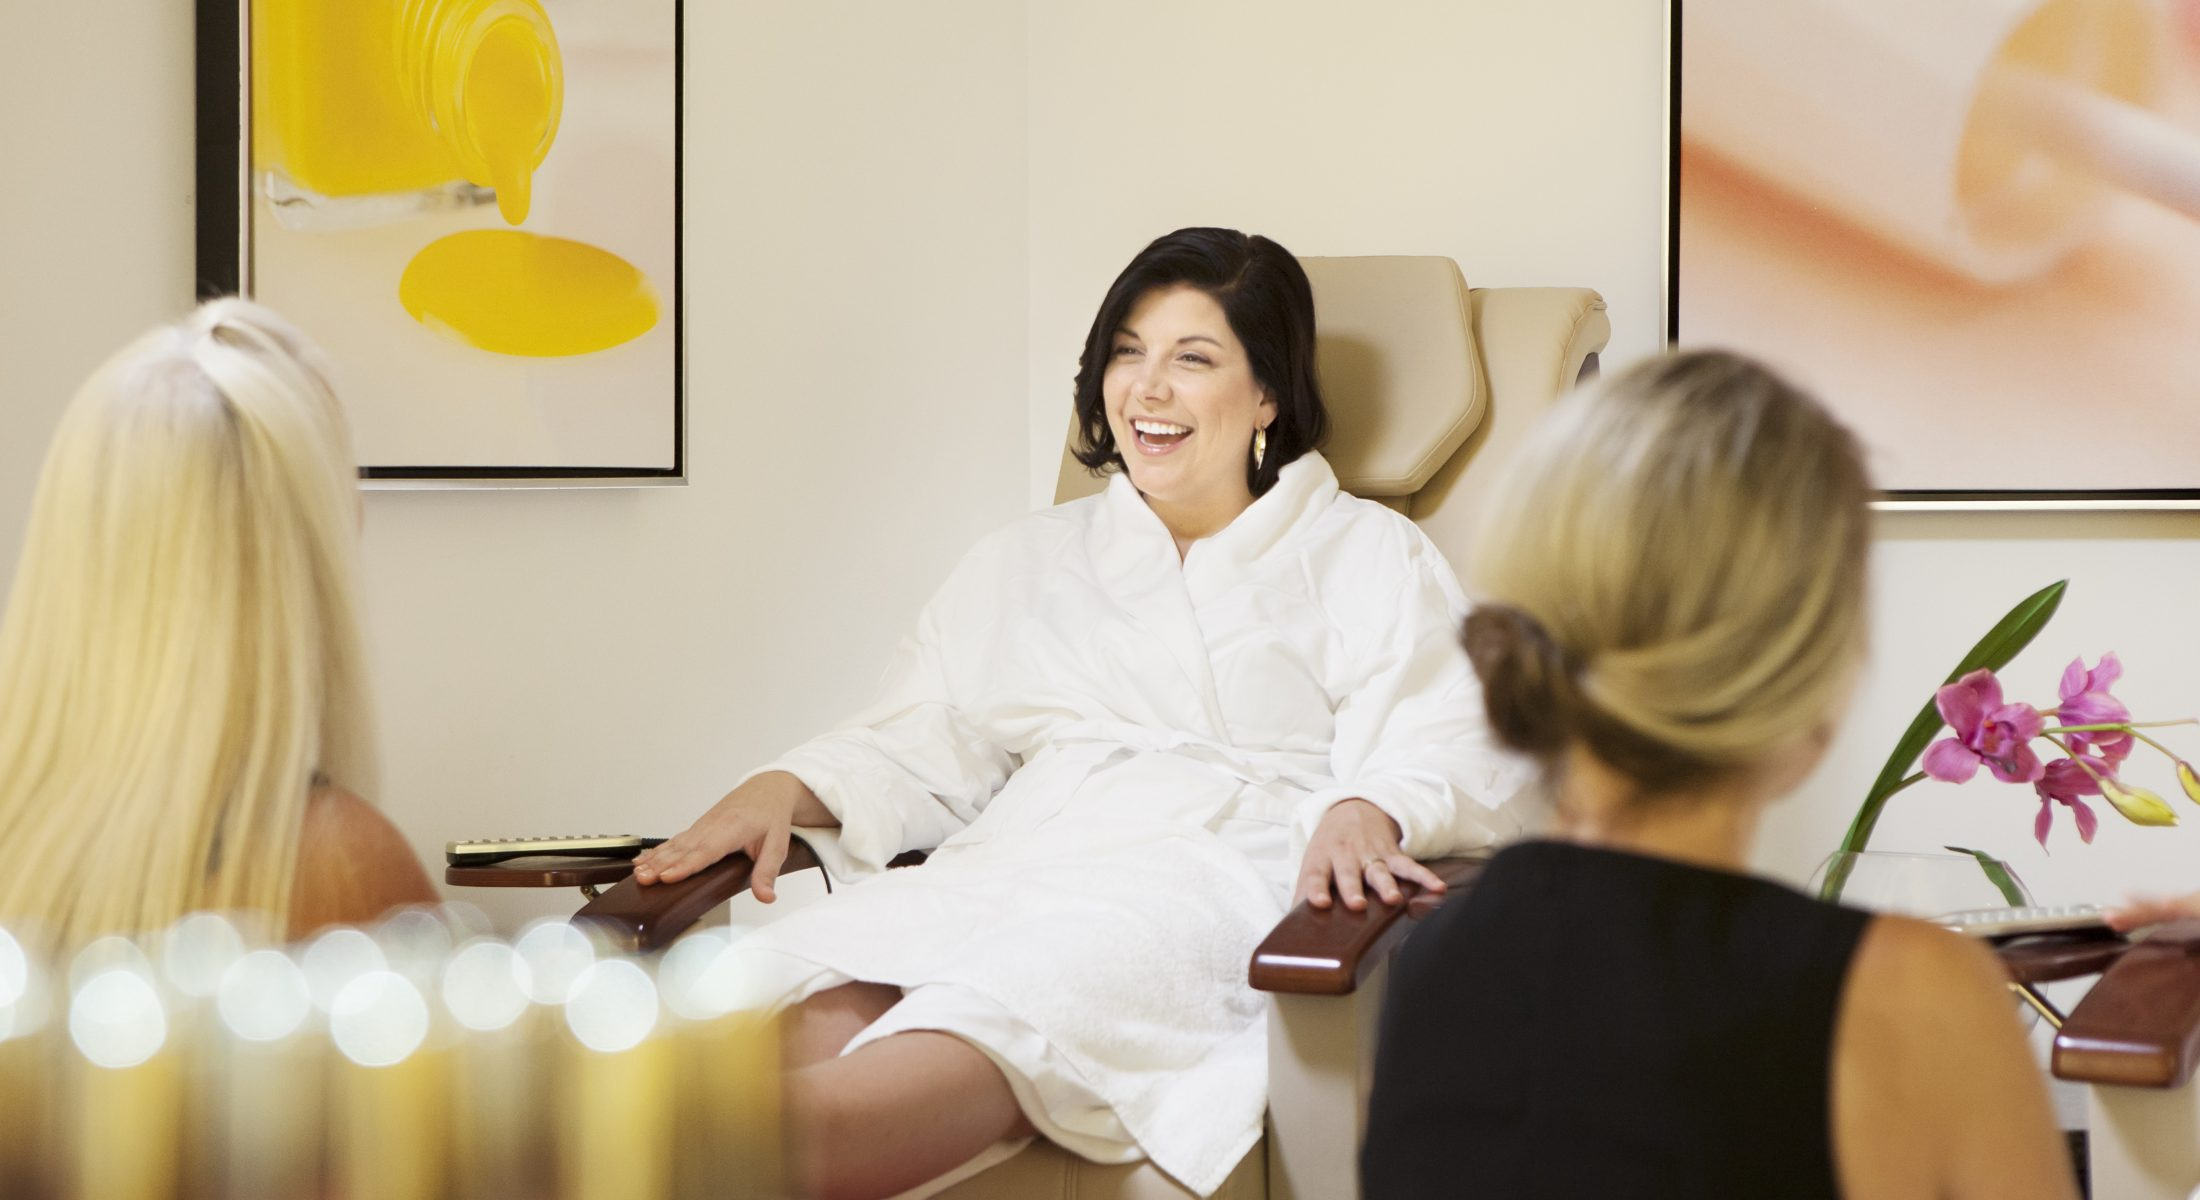 Lady Smiling and Getting a Pedicure